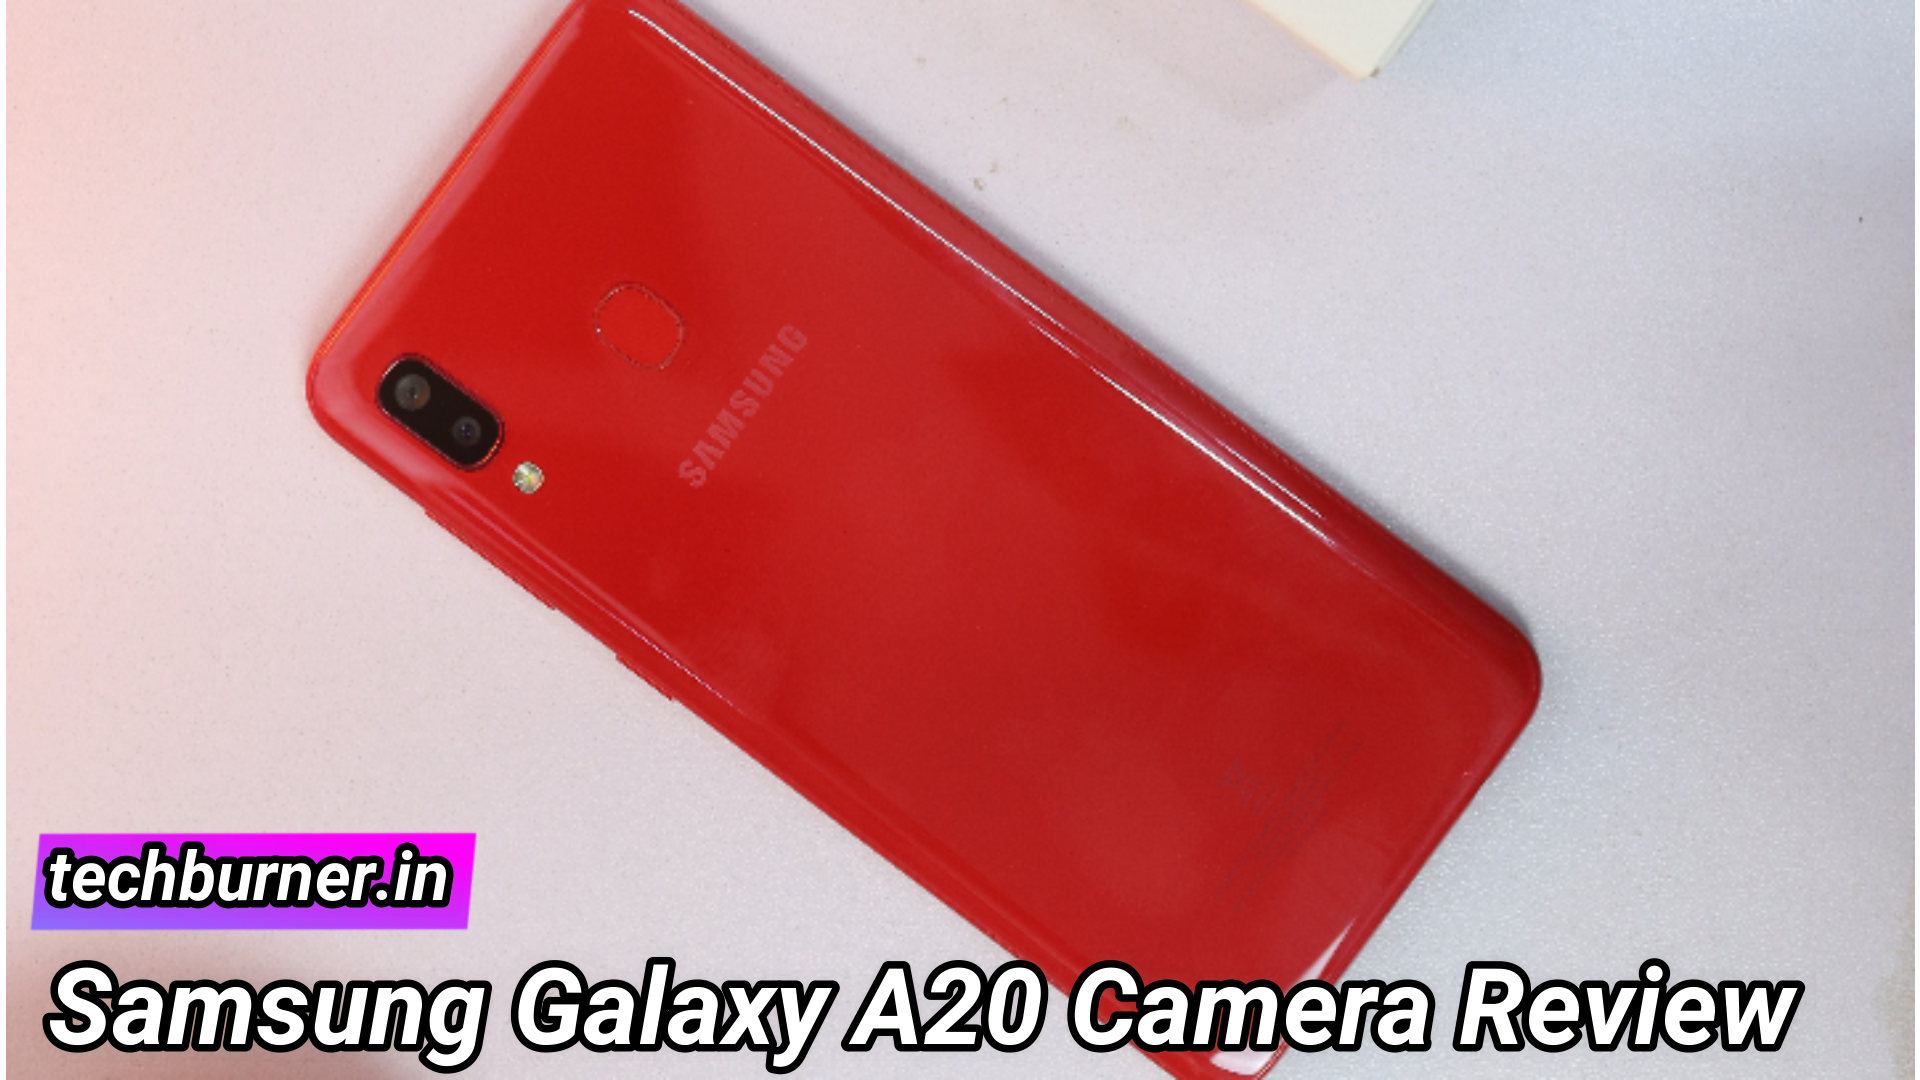 Samsung Galaxy A20 Camera Review, Samsung Galaxy A20 Camera Specification, Samsung Galaxy A20 Camera Samples